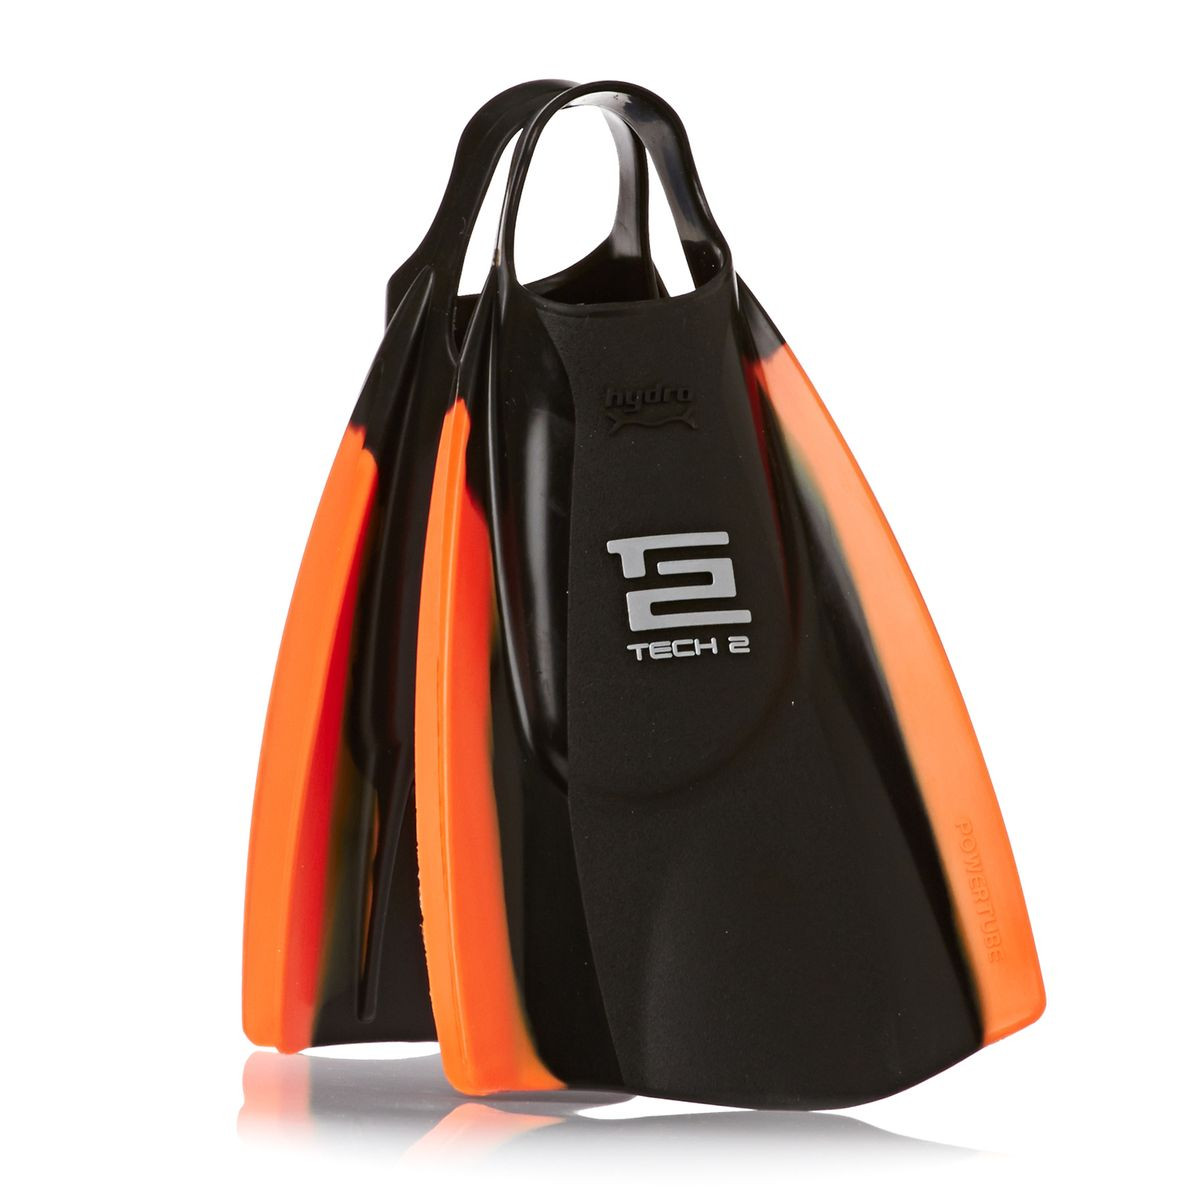 Hydro Tech 2 Bodyboard Fins - Black/ Orange